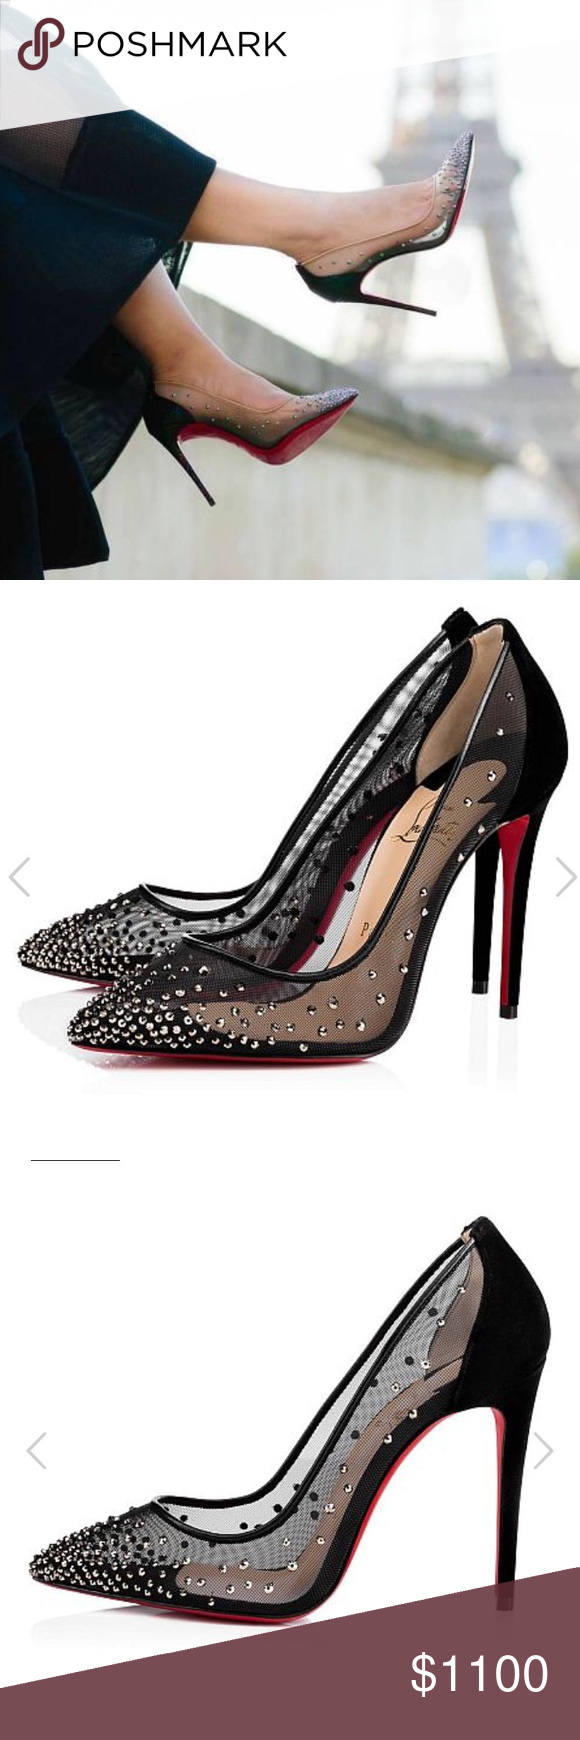 info for f1839 9df8c NEW • Christian Louboutin • Pigalle Follies Strass ...